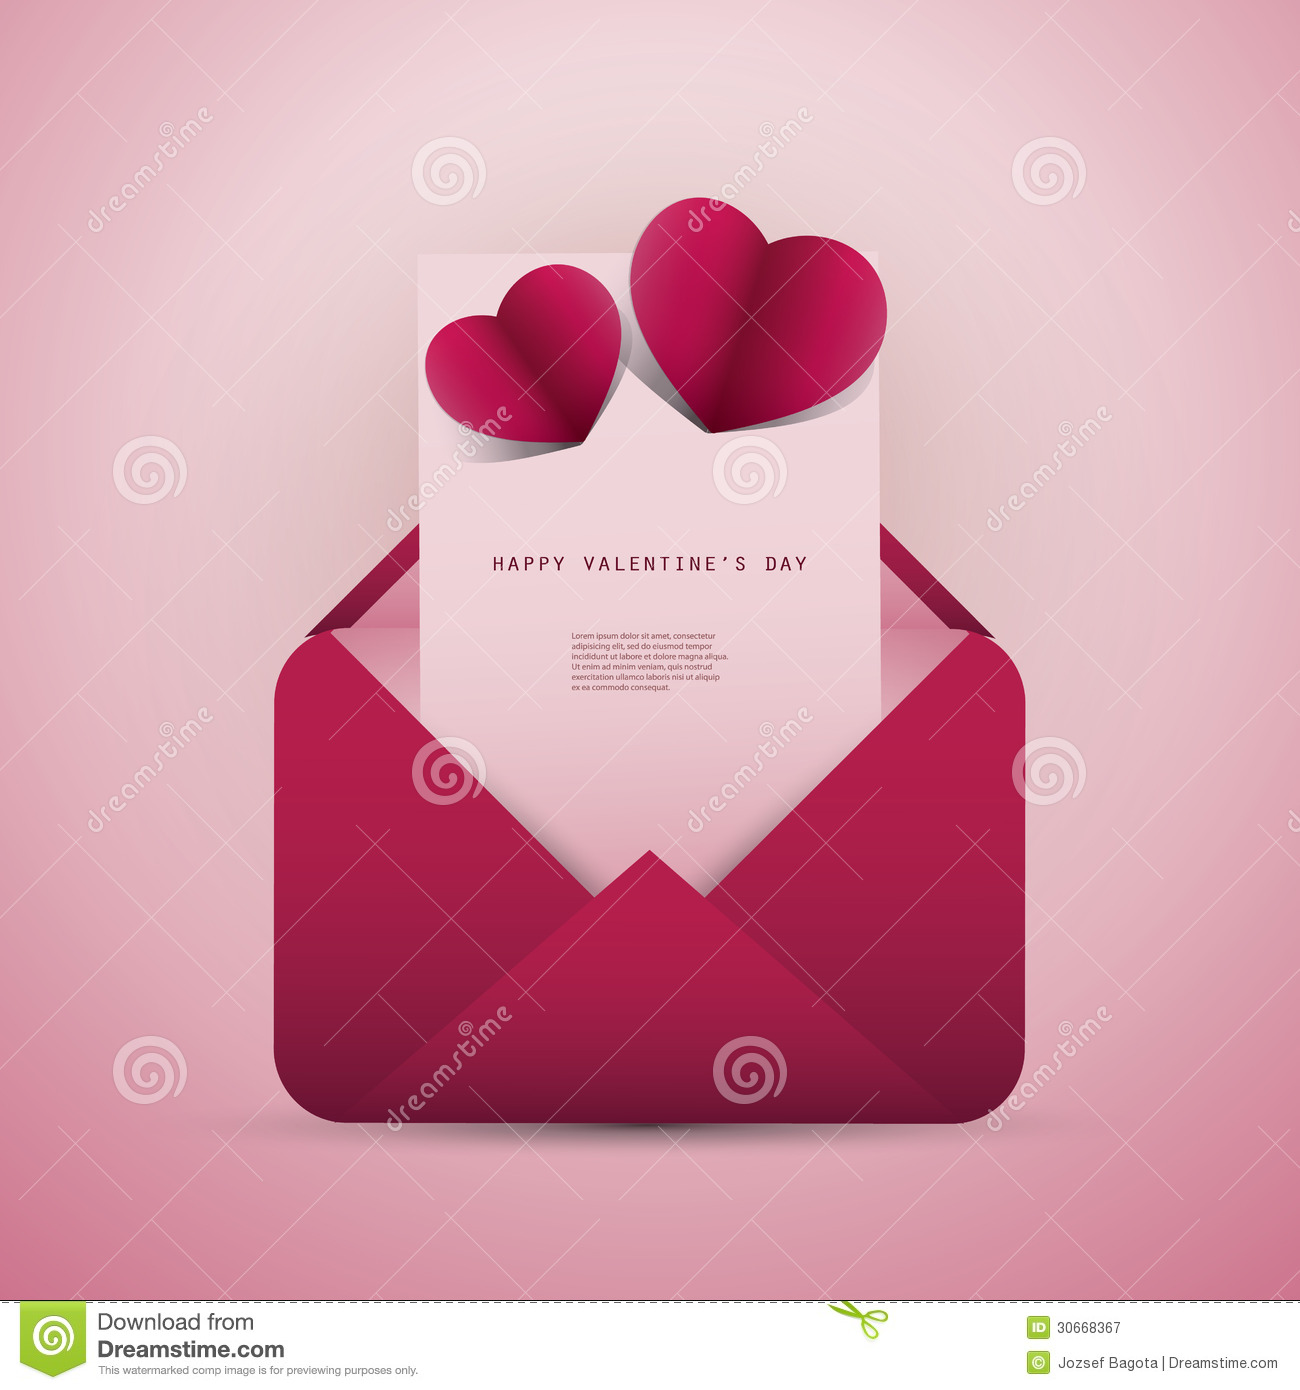 Valentines Day Card Royalty Free Photography Image 30668367 – What to Right on a Valentine Day Card